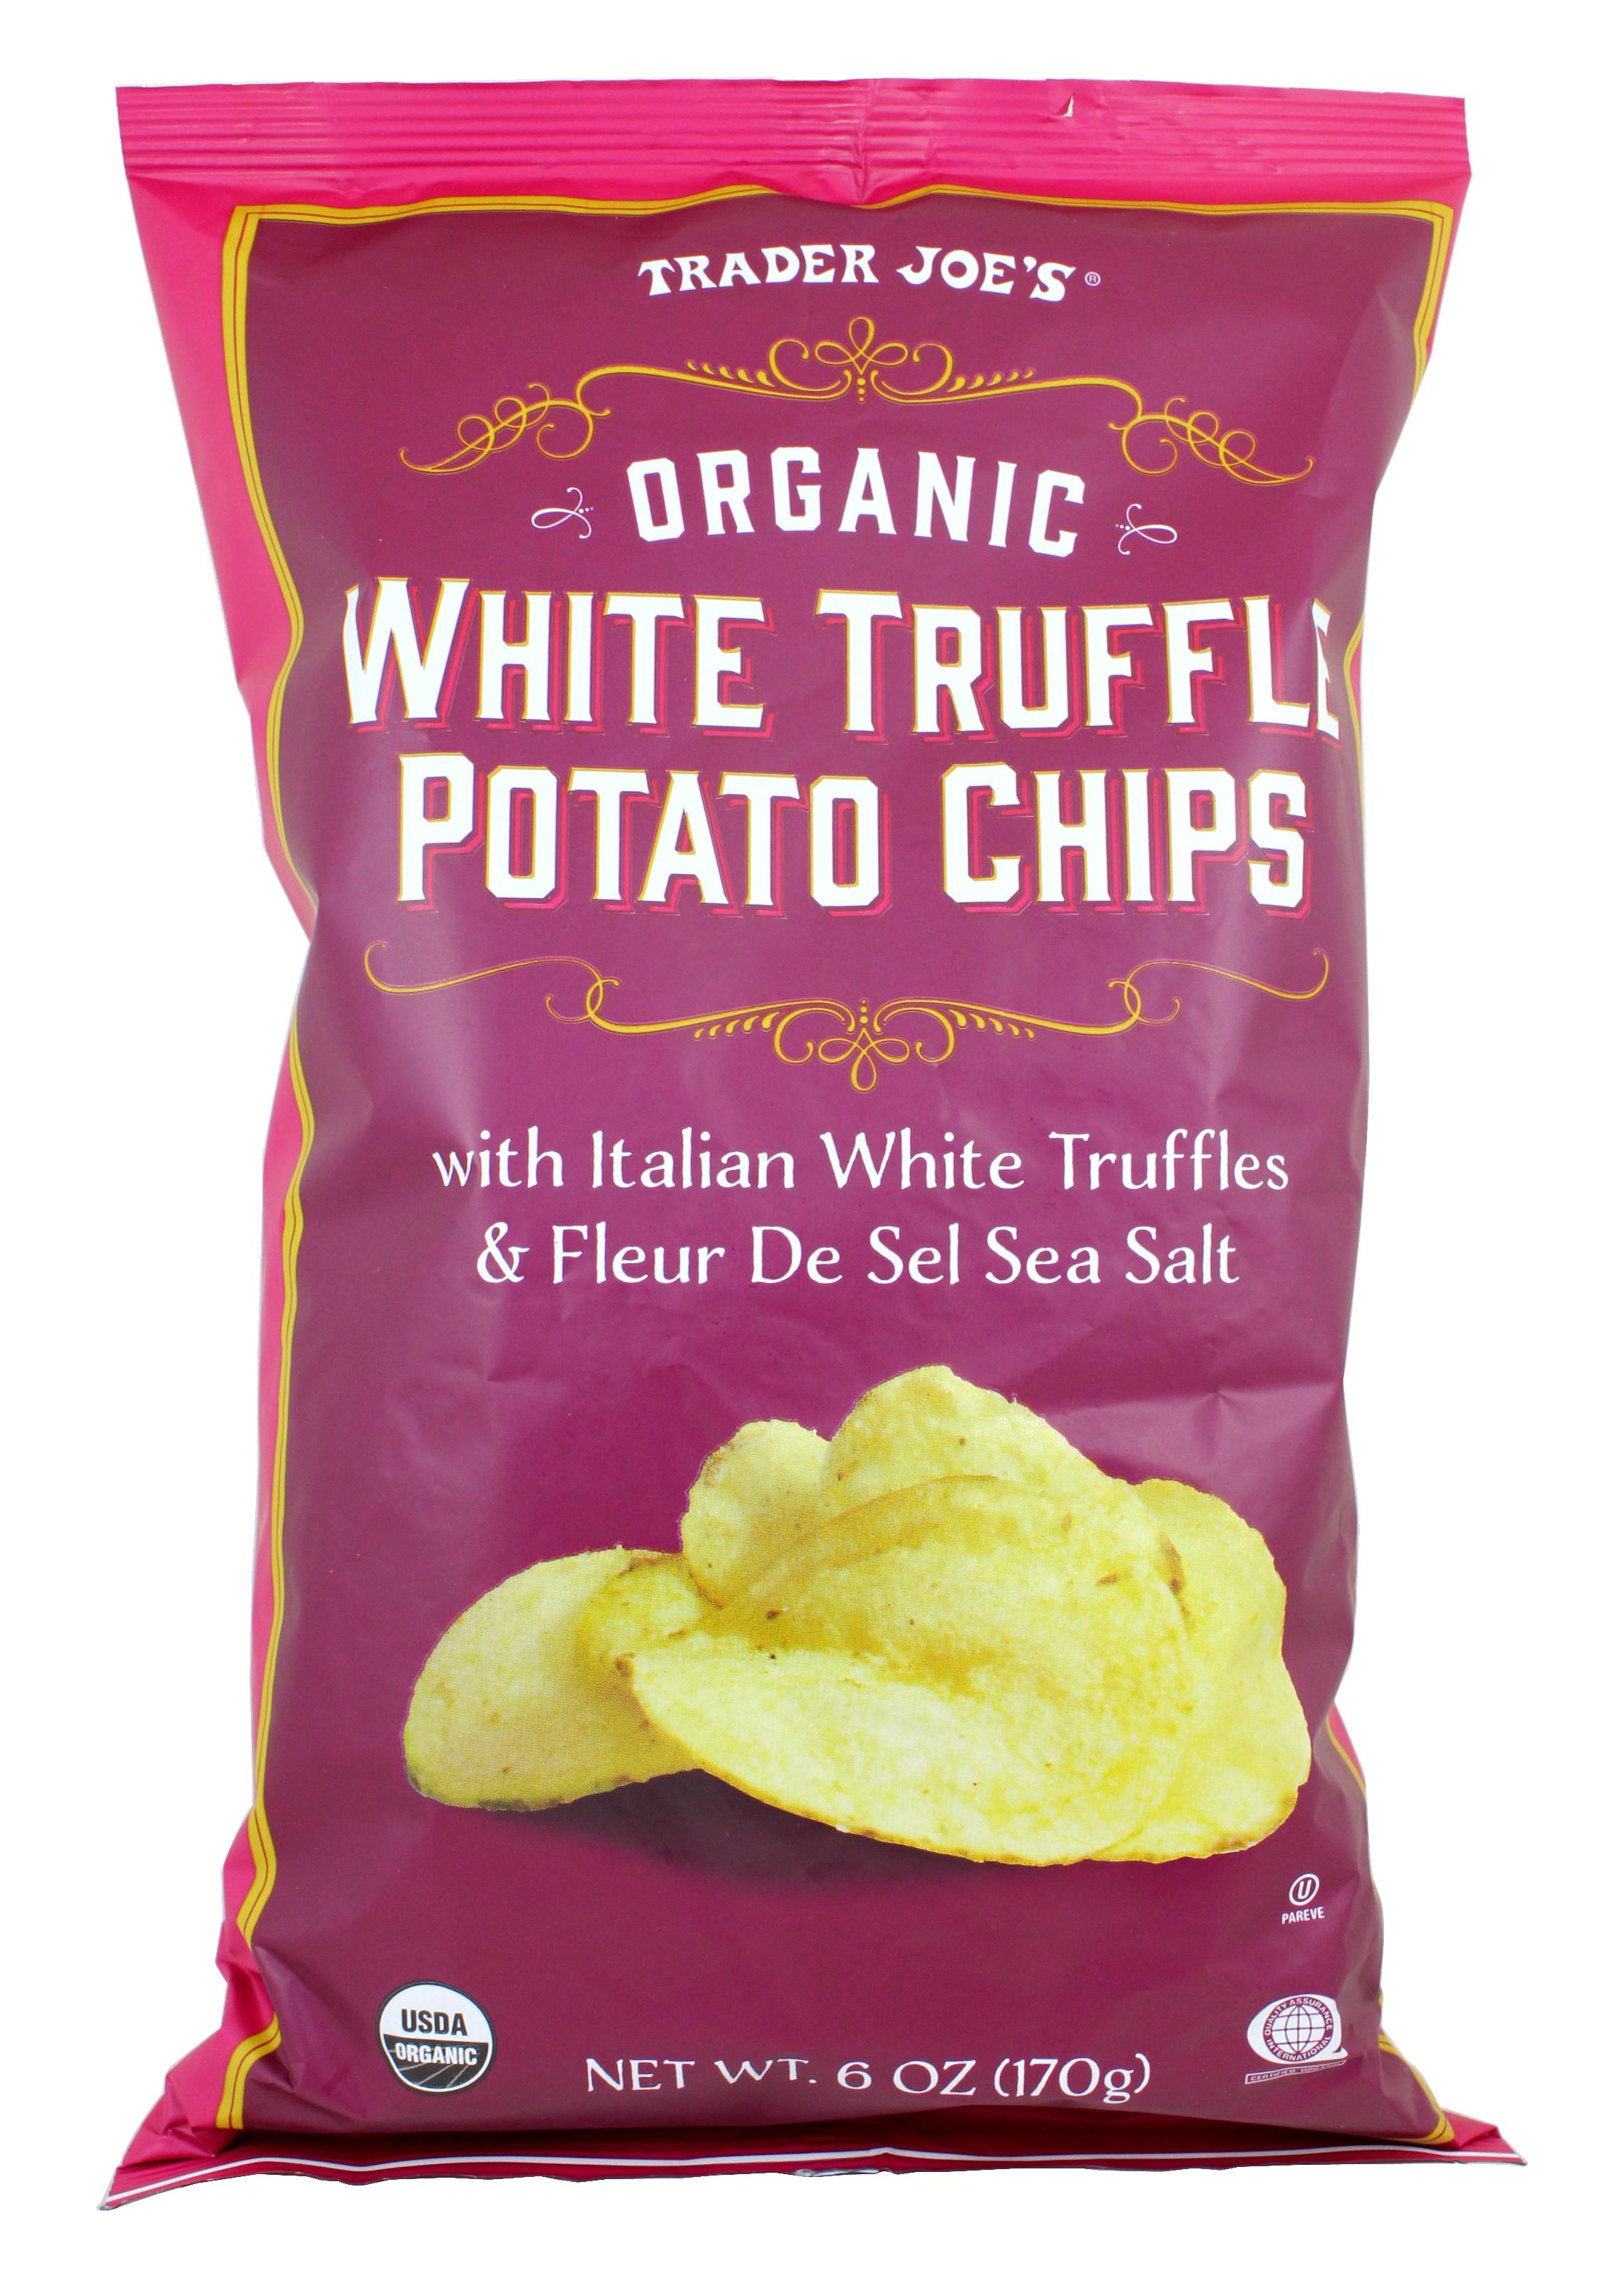 "Organic White Truffle Potato Chips. If it has truffle on it, I'm trying it. And these chips? Wow! Such a delicious chip treat! The Salt & Vinegar and HIckory Barbeque chips aren't too shabby either. On a monthly basis I rotate through three grocery stops - Costco, Walmart Pick-up, and Trader Joe's. And, you guessed it, Trader Joe's is my favorite. Do you love it too? I have classic staples there and am always finding new favorites. That's the joy things there follow the old adage ""Make new friends but keep the old"". How they smoosh so many amazing products into their few rows, I will never know, but I no doubt discover fabulous things ever time my red cart wanders through. (Image: Trader Joes)"